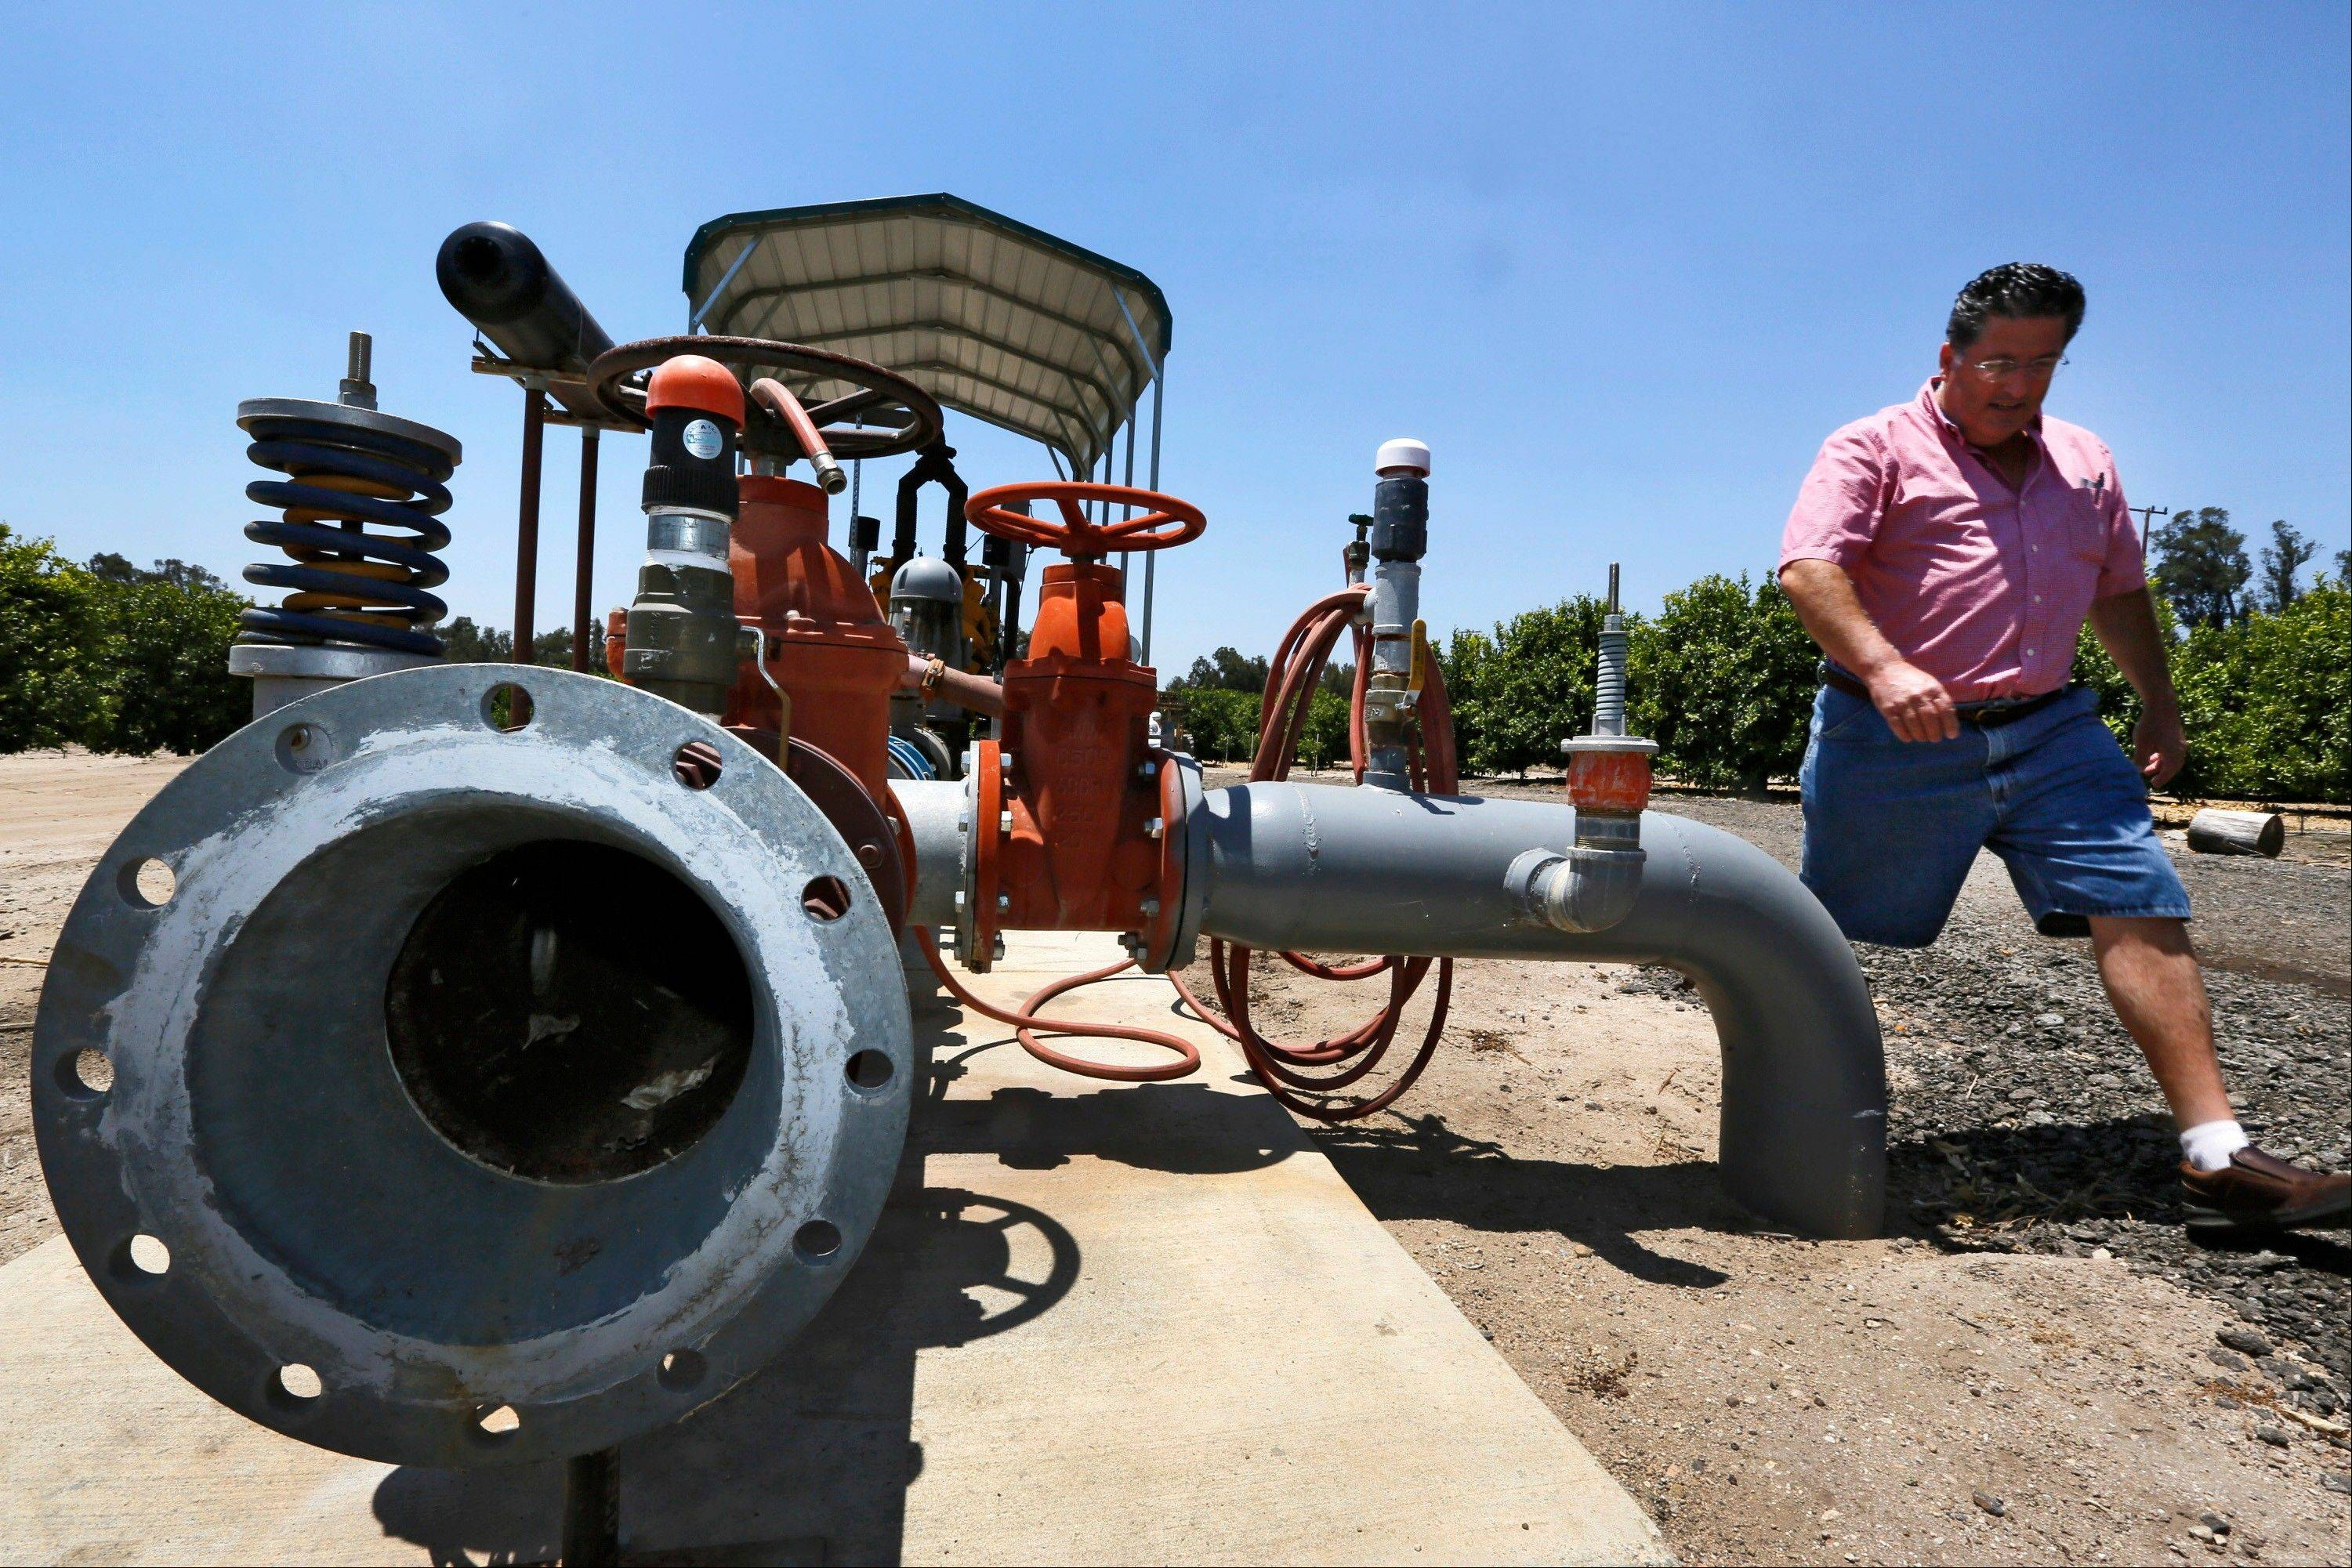 Schwabauer tours his property's irrigation system. For years Schwabauer has watched groundwater levels retreat with higher demand from encroaching development, forcing ranchers and farmers to sink piping deeper into the earth or drill expensive, new wells for irrigation.